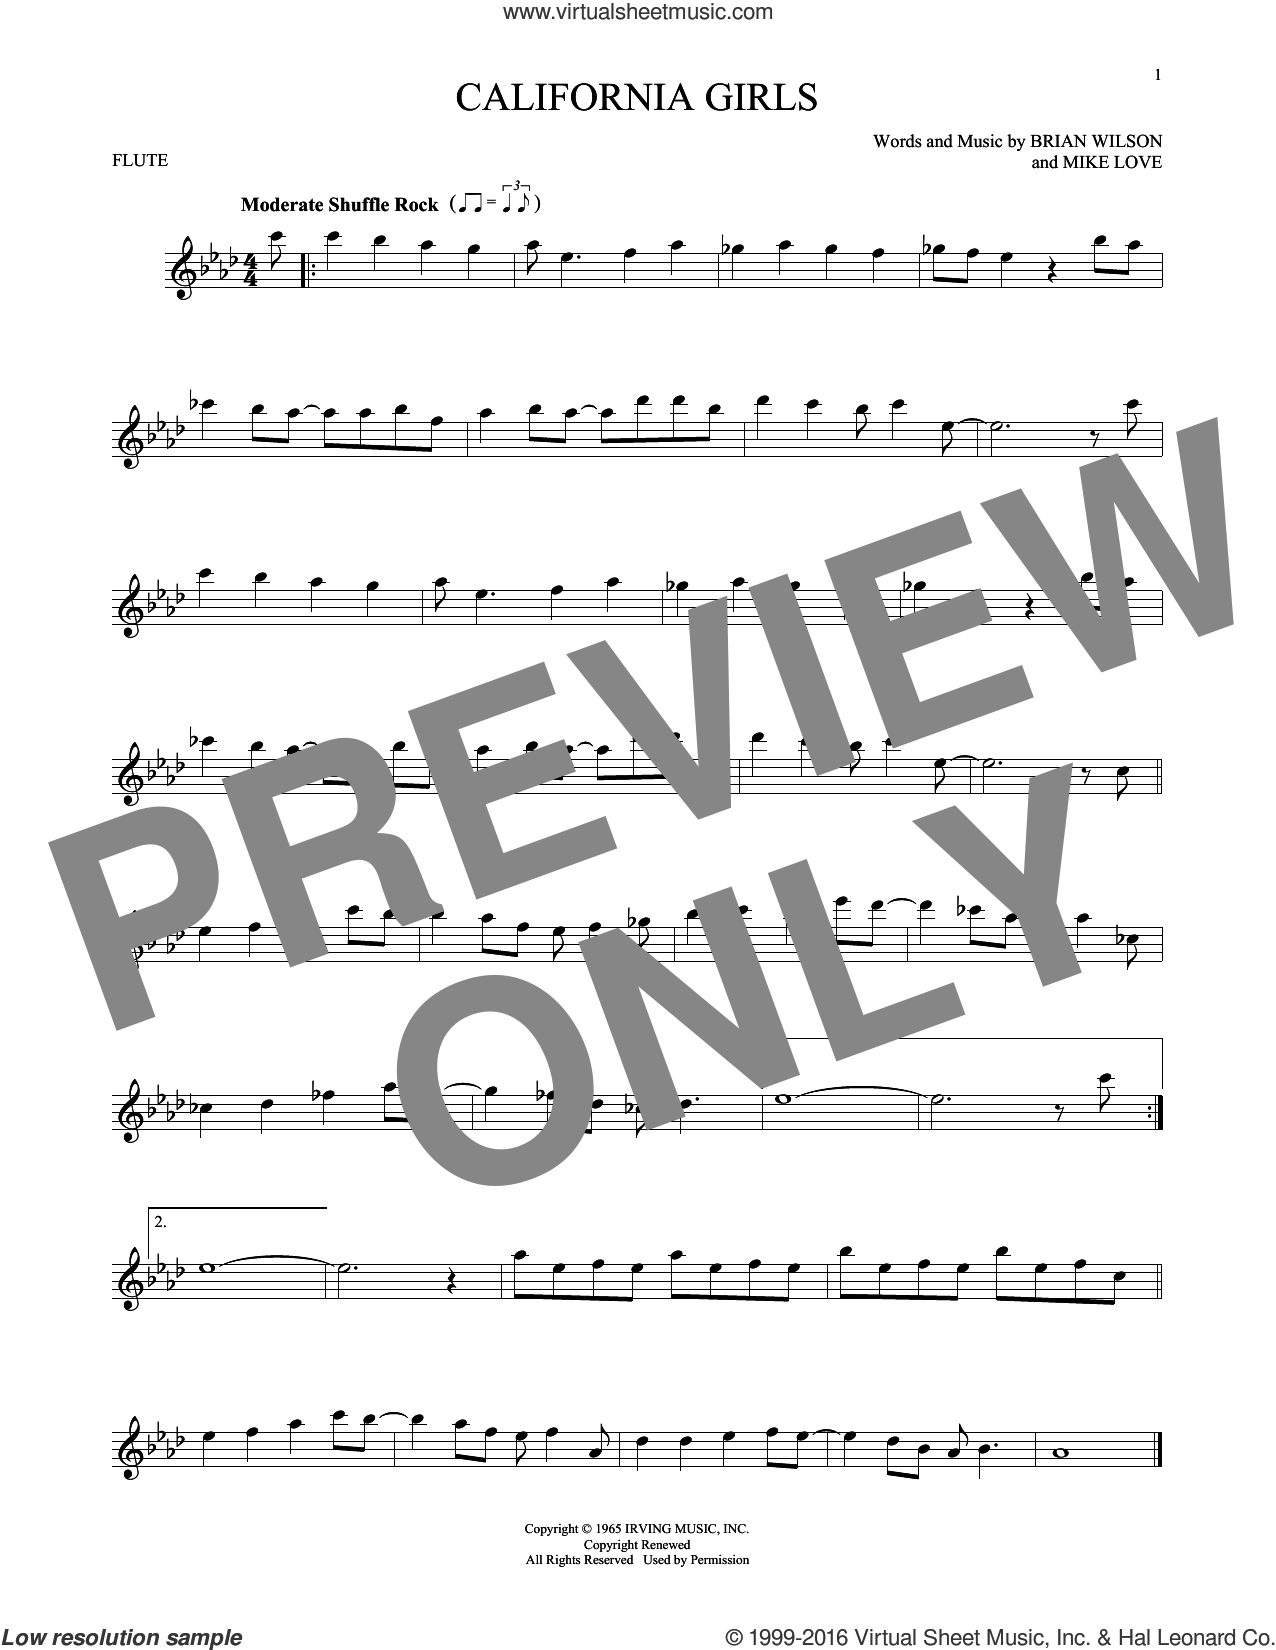 California Girls sheet music for flute solo by Mike Love